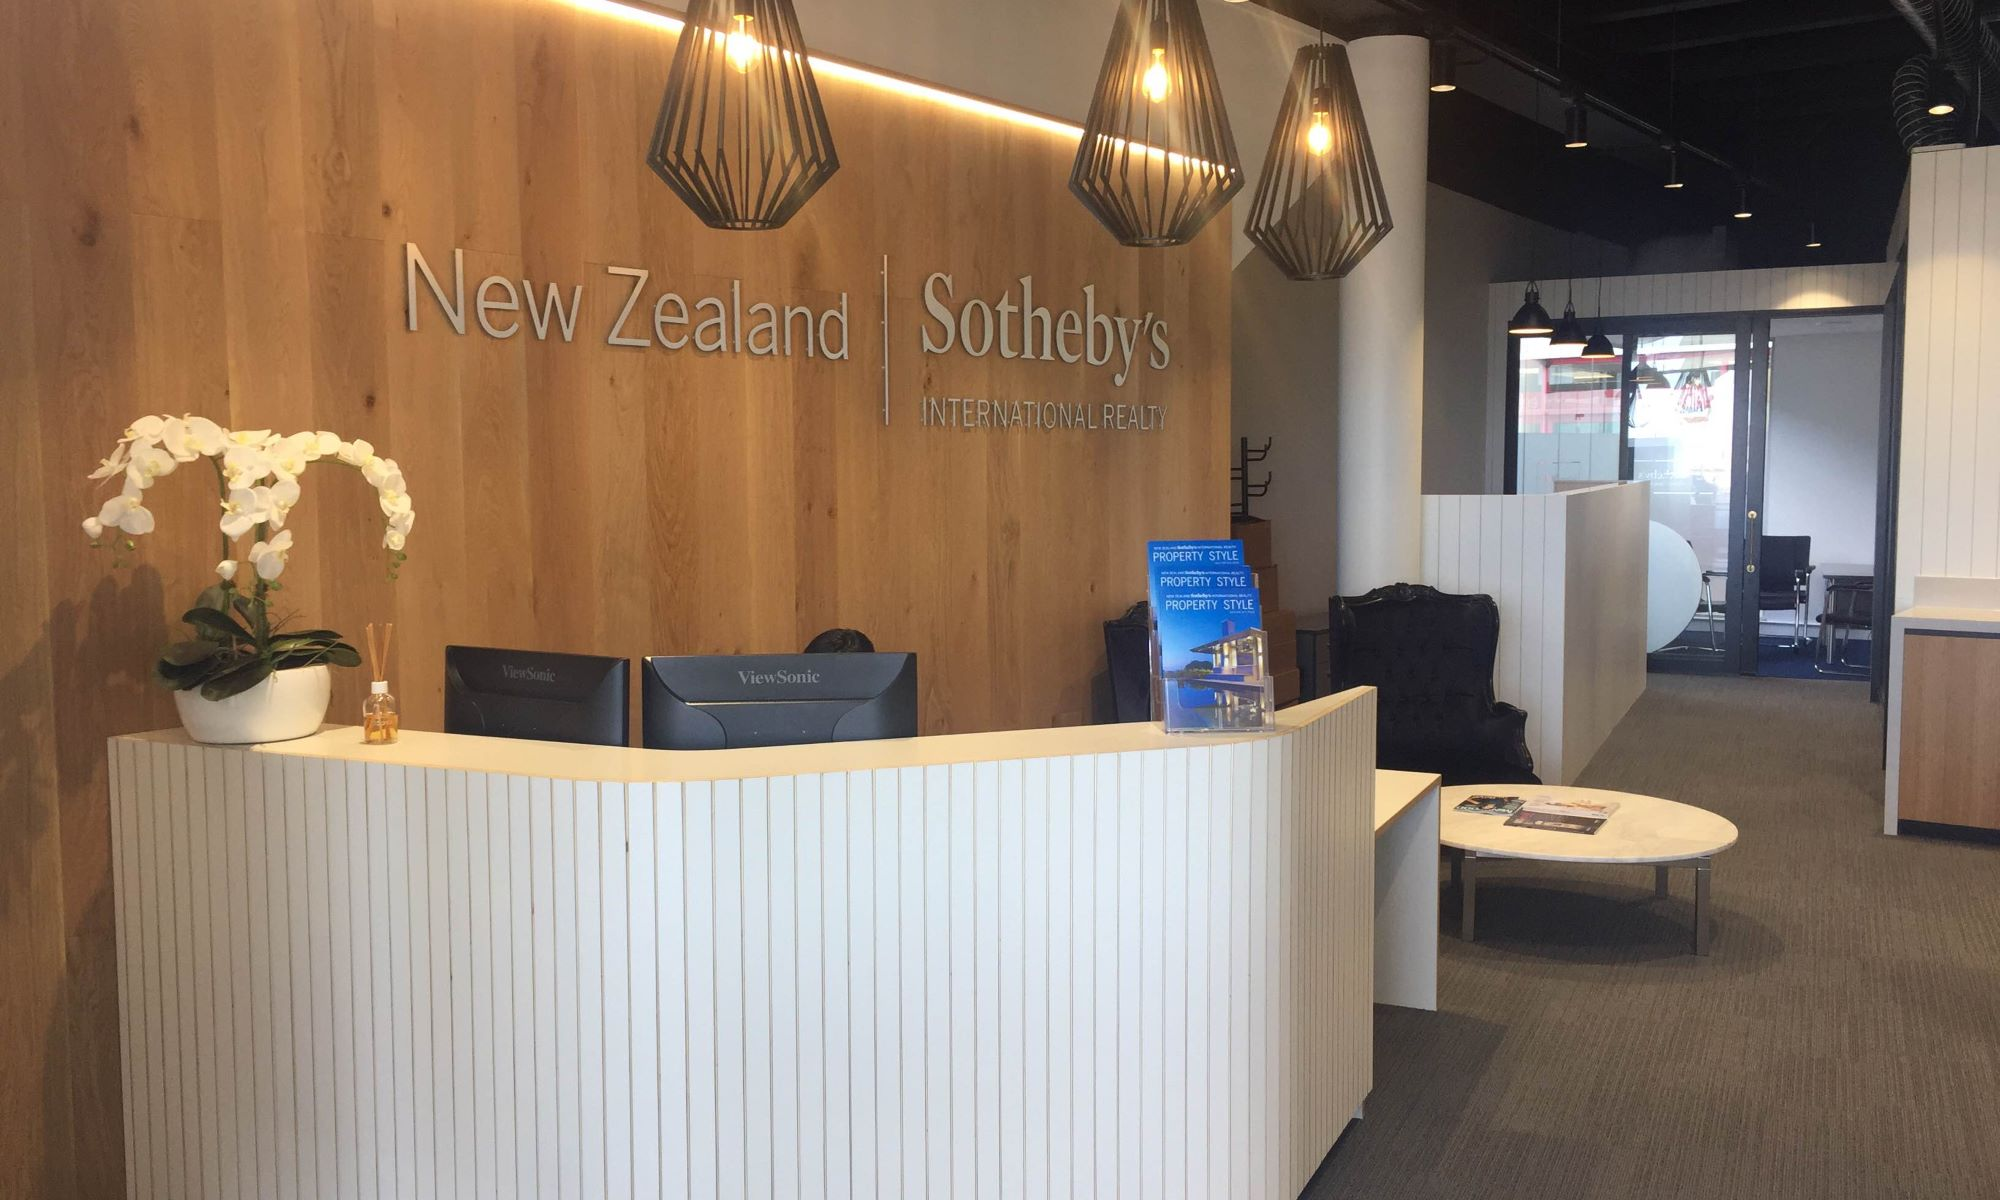 Office New Zealand Sotheby's International Realty Photo